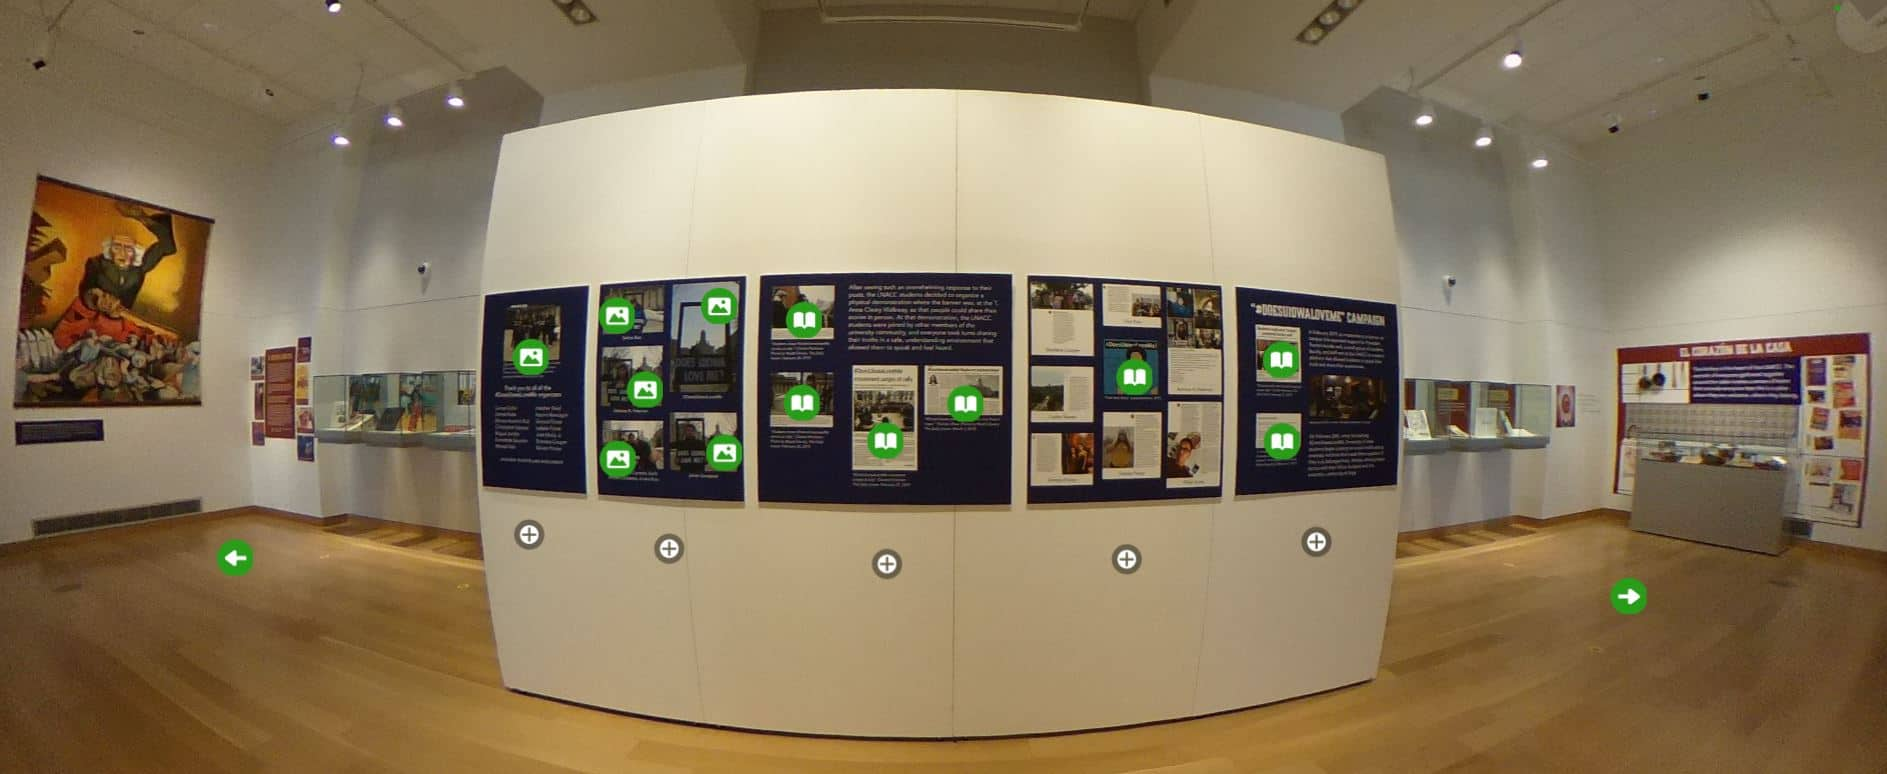 A panoramic view of part of the Main Library Gallery exhibit shows several text panels with clickable icons.